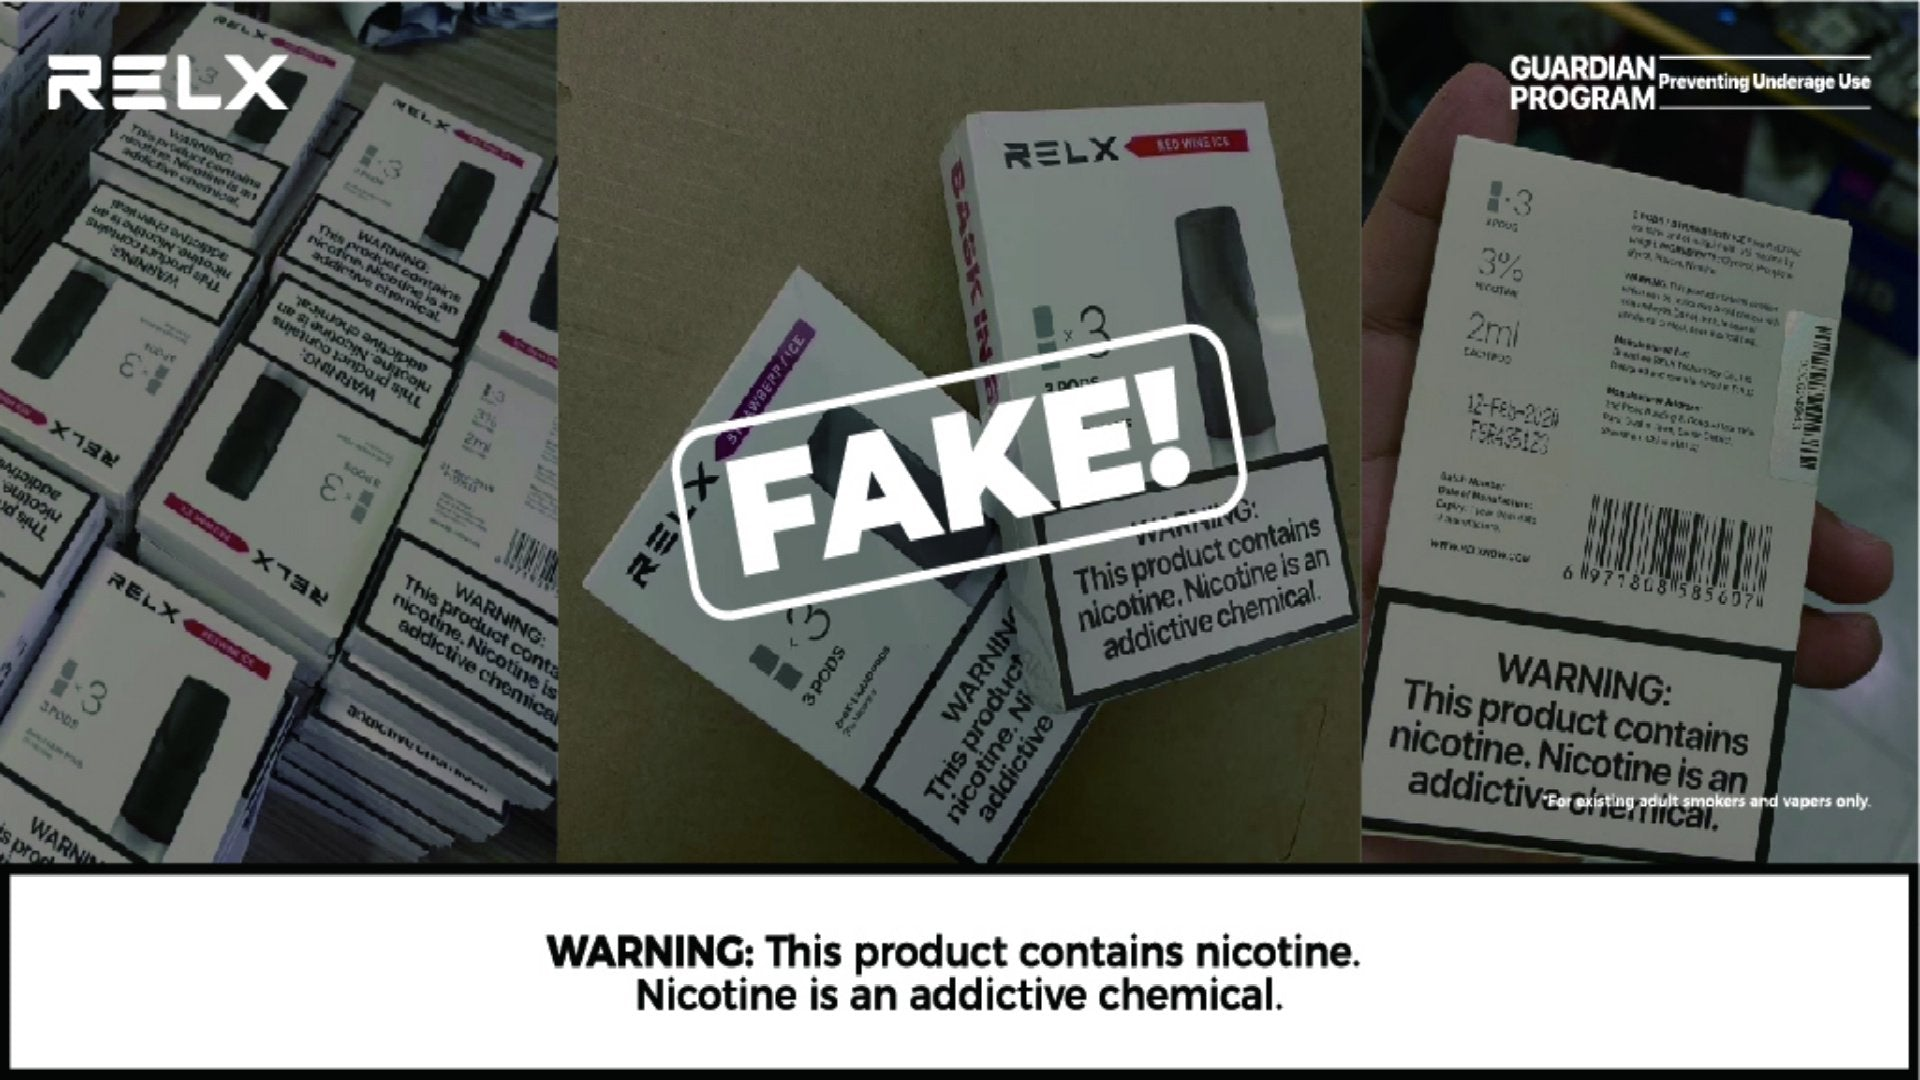 RELX Warns Consumers to Stay Away From Fake RELXPODS